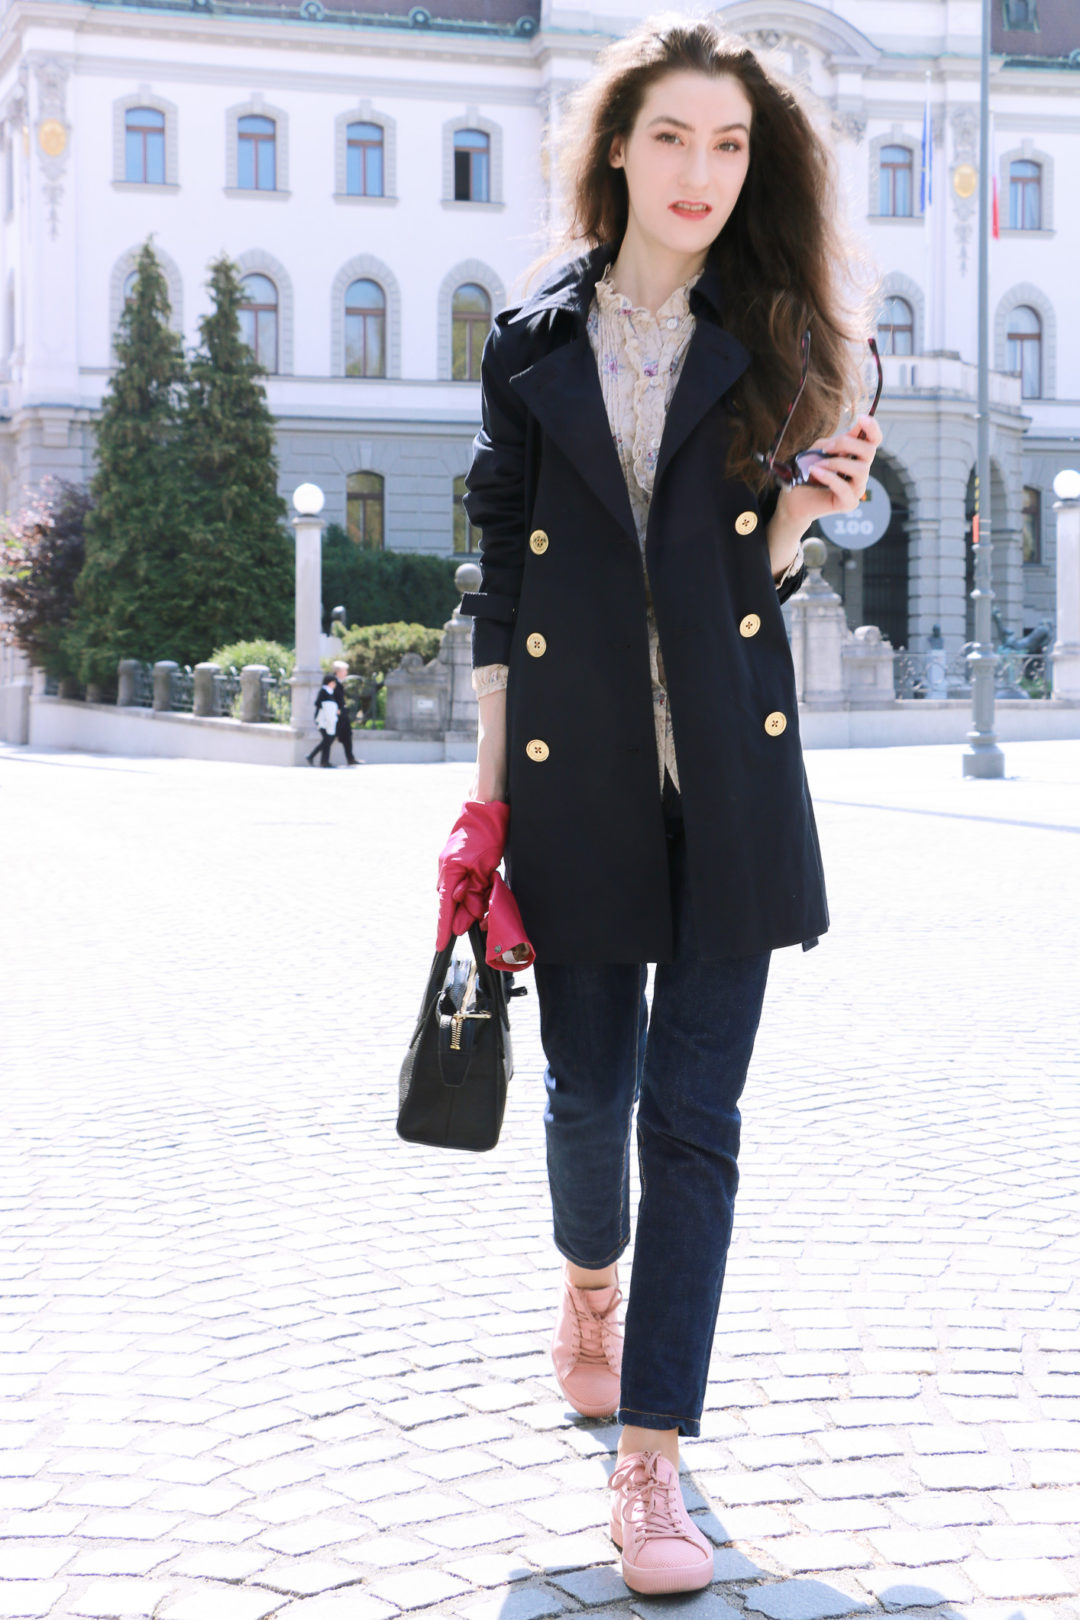 Fashion blogger Veronika Lipar of Brunette From Wall Street sharing how to style blue trench coat, dark blue mom jeans, pale pink sneakers, floral blouse and small black bag for chic business style